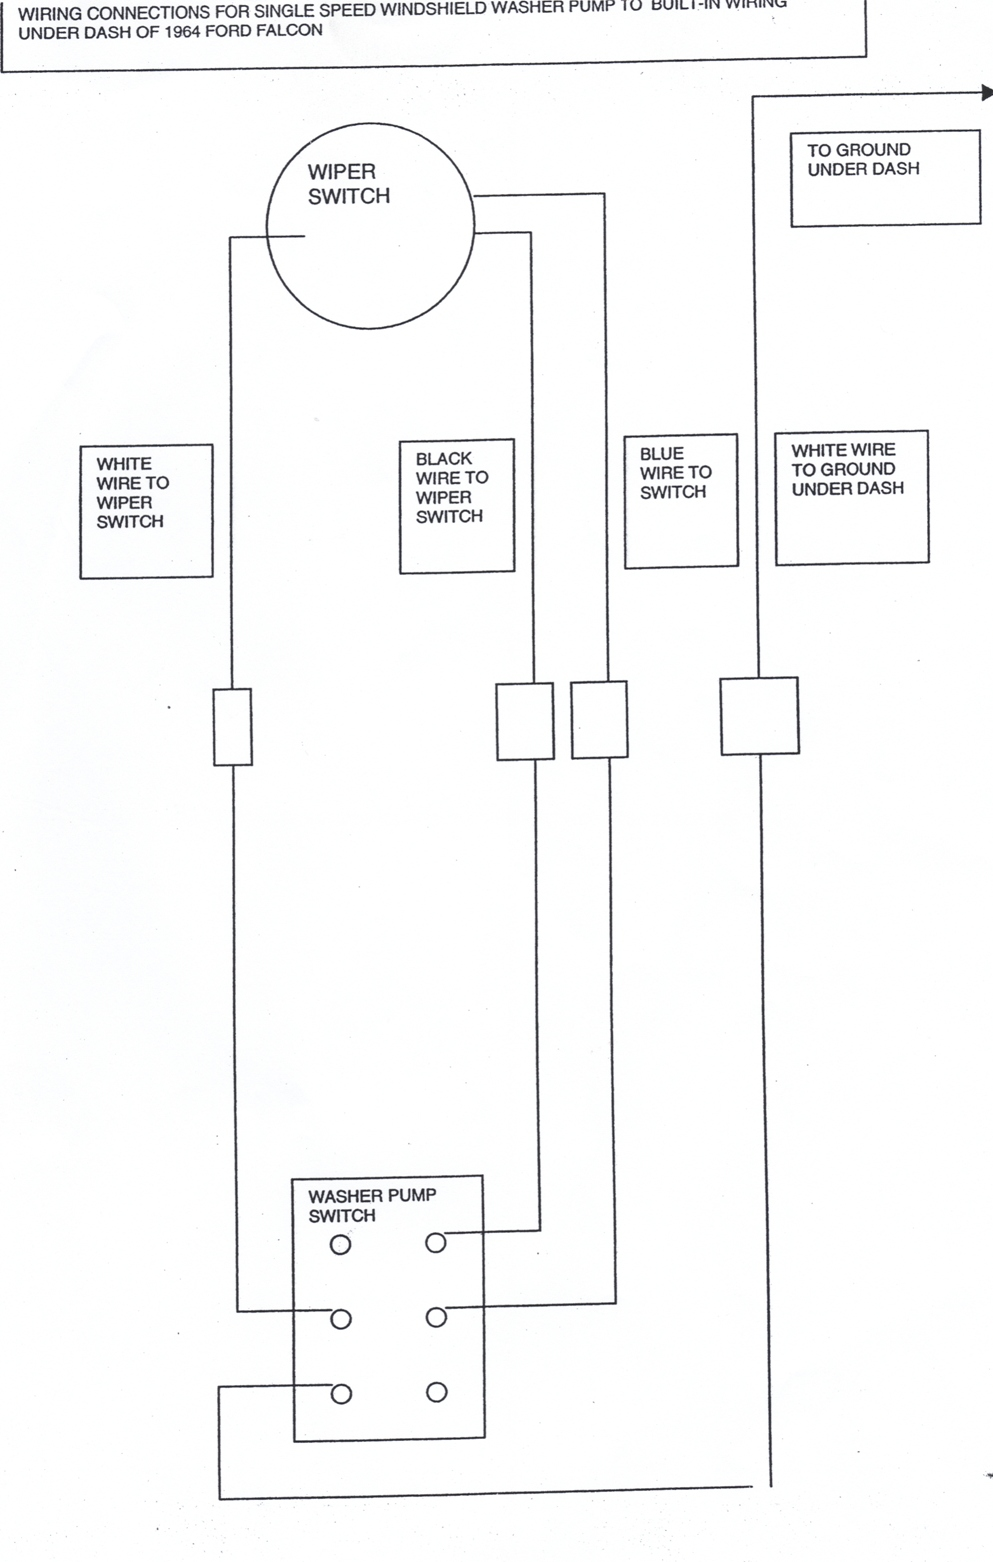 64_Falcon 4 falcon diagrams 1964 ford falcon wiring diagram at fashall.co